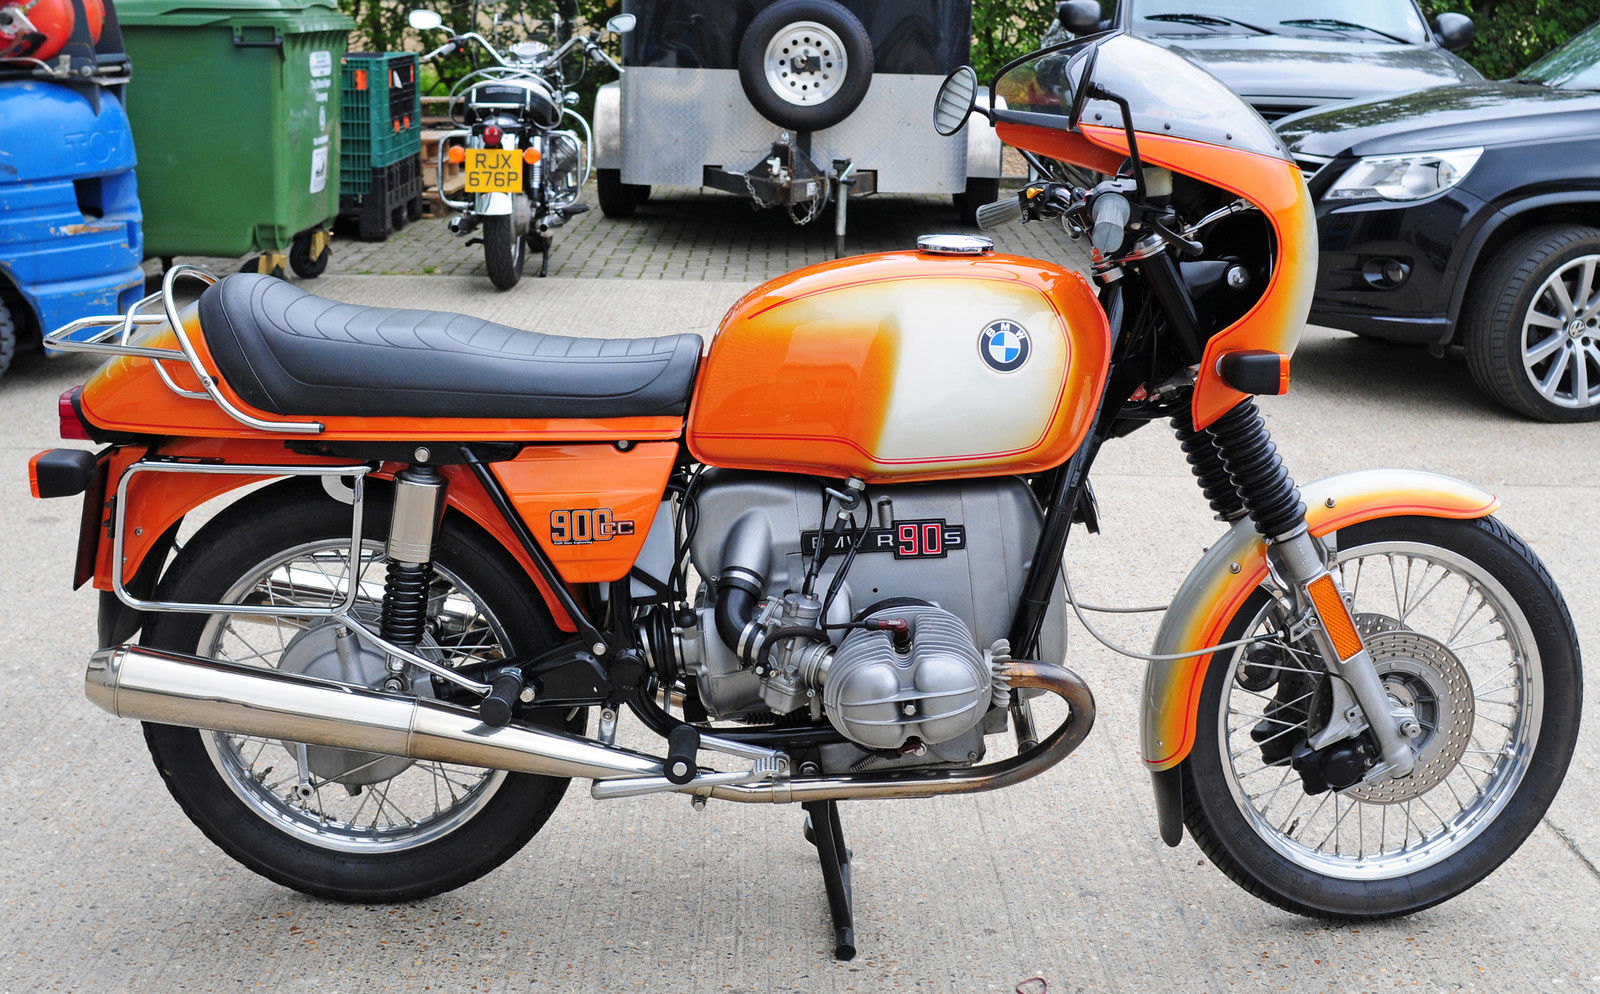 BMW R90S - 1976 - Right Side View, Gas Tank Fenders, Motor and Transmission.